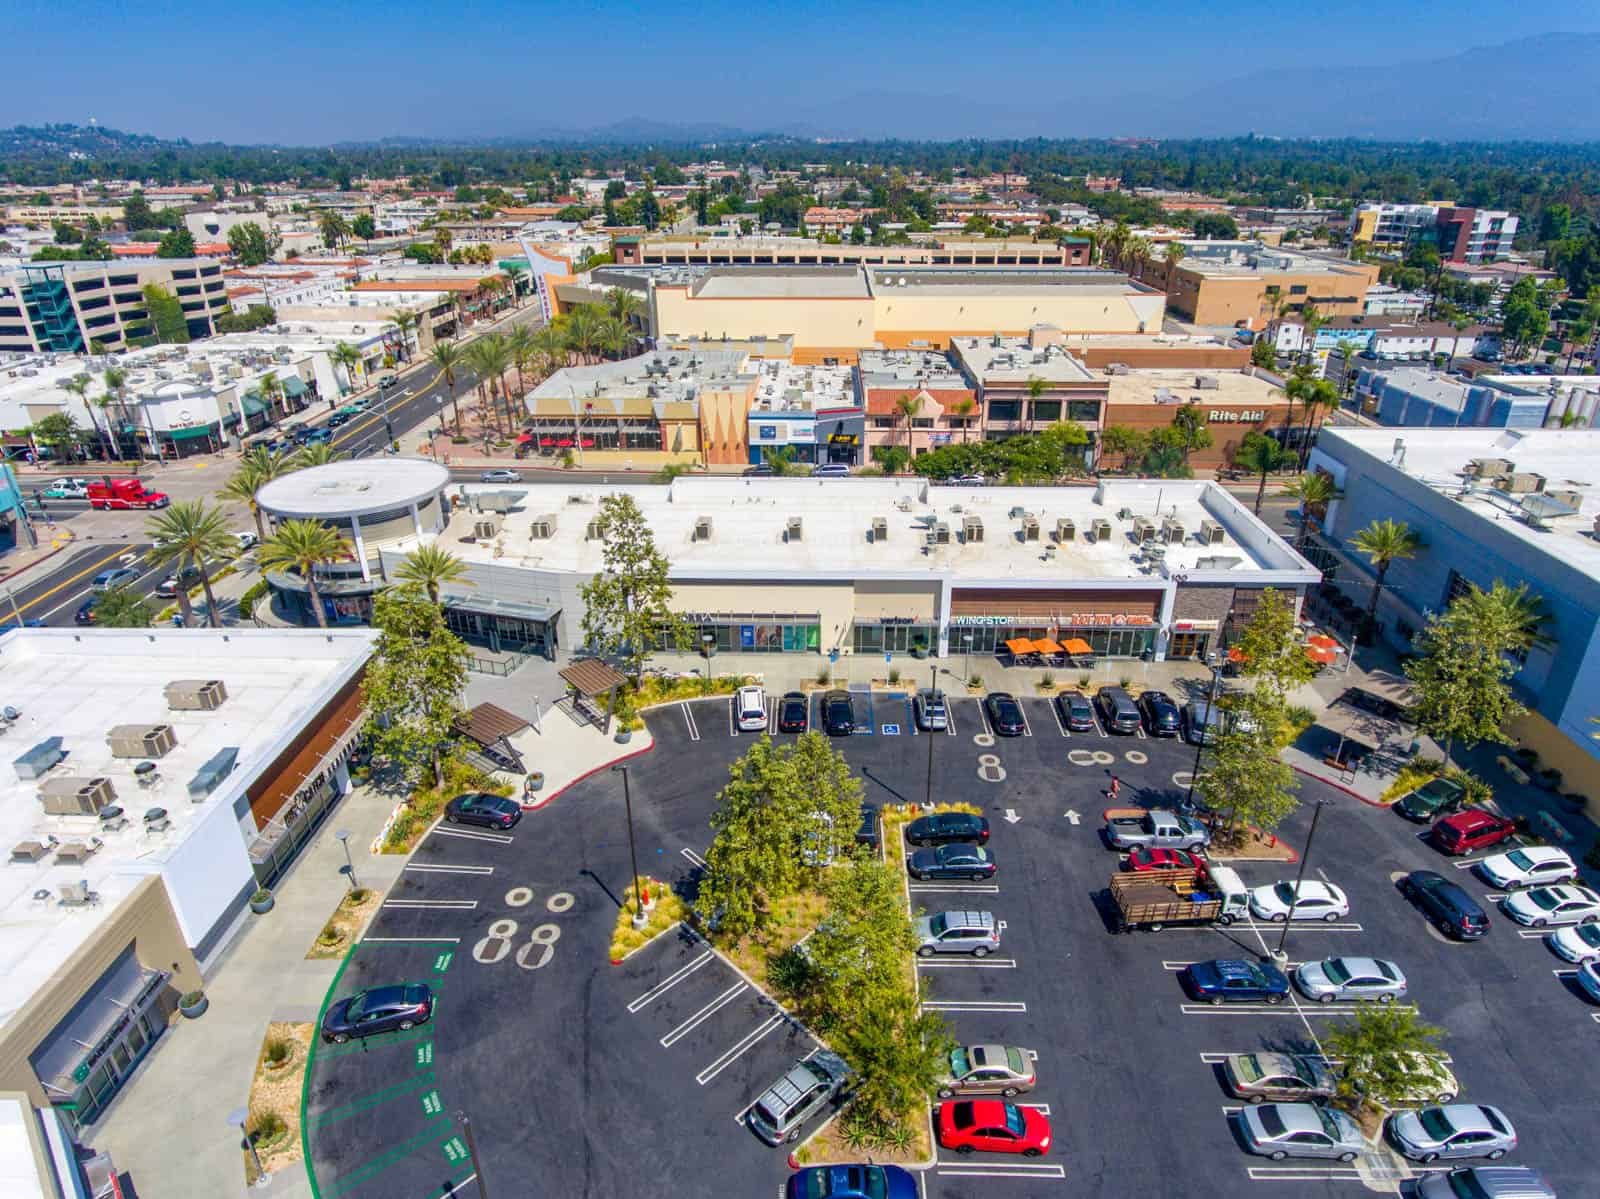 drone photo of commercial real estate shopping plaza in Alhambra, California